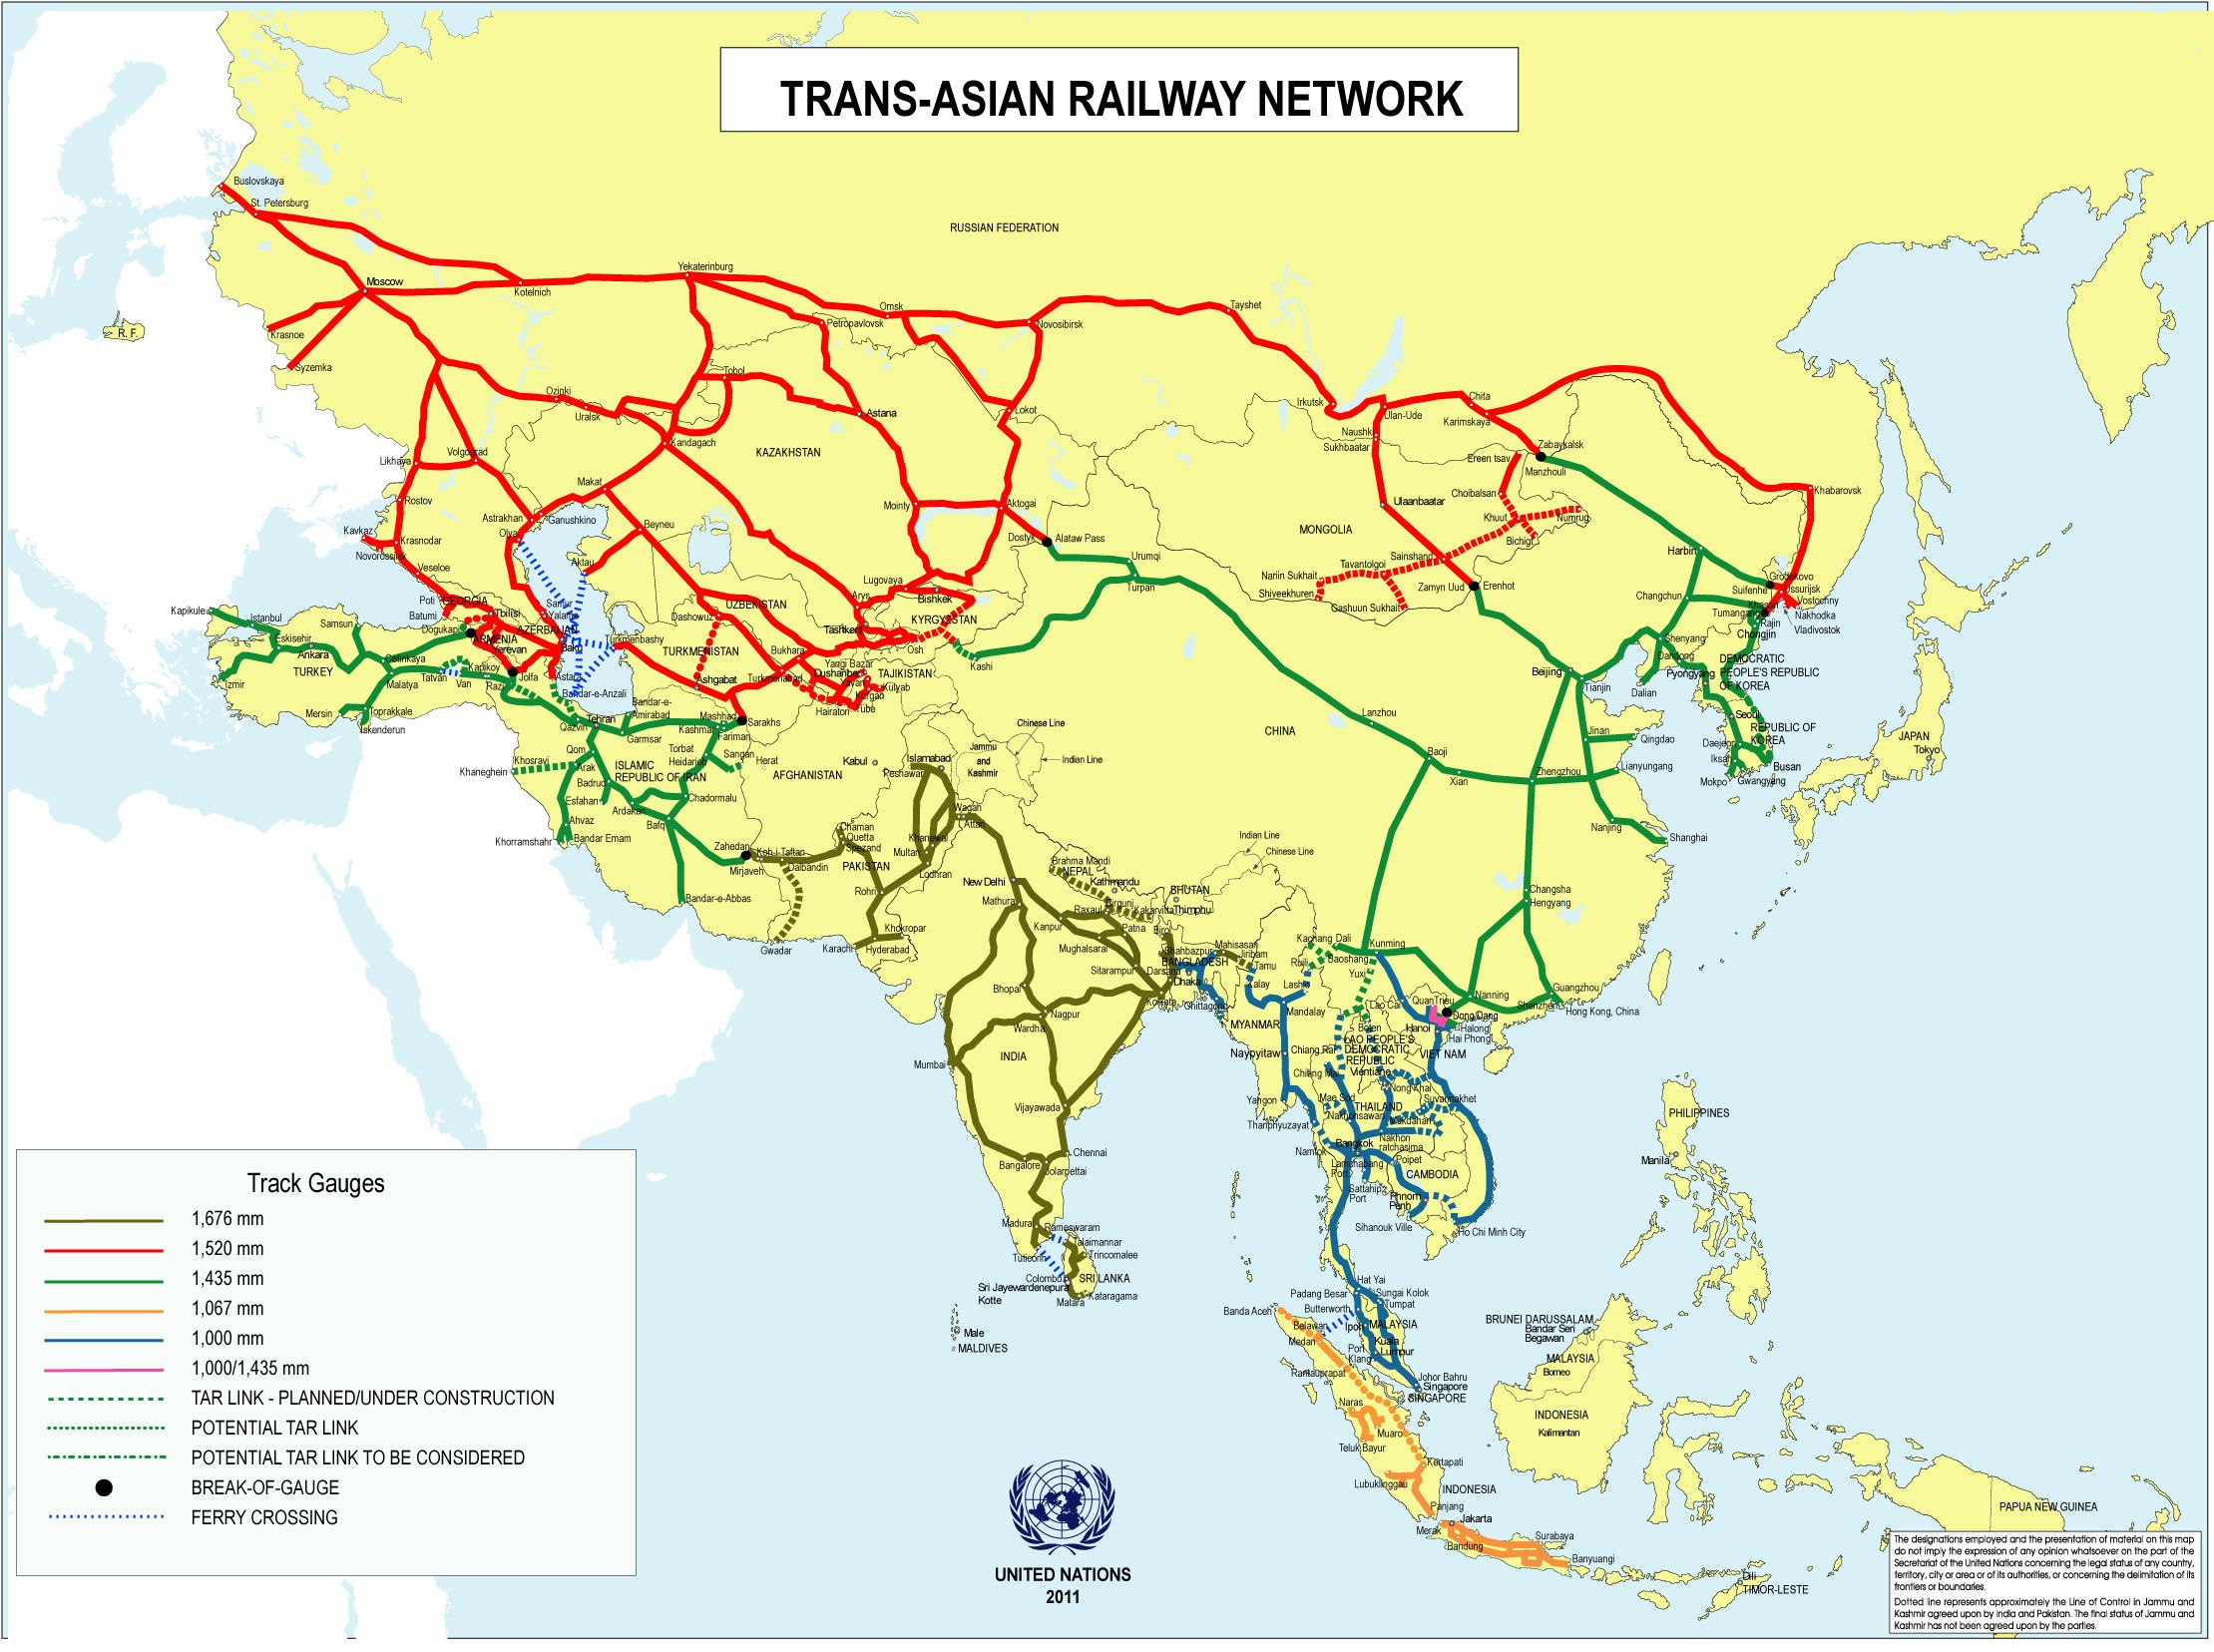 Map Of Asia Railways.Trans Asian Railway Network Asia Travel Resources In